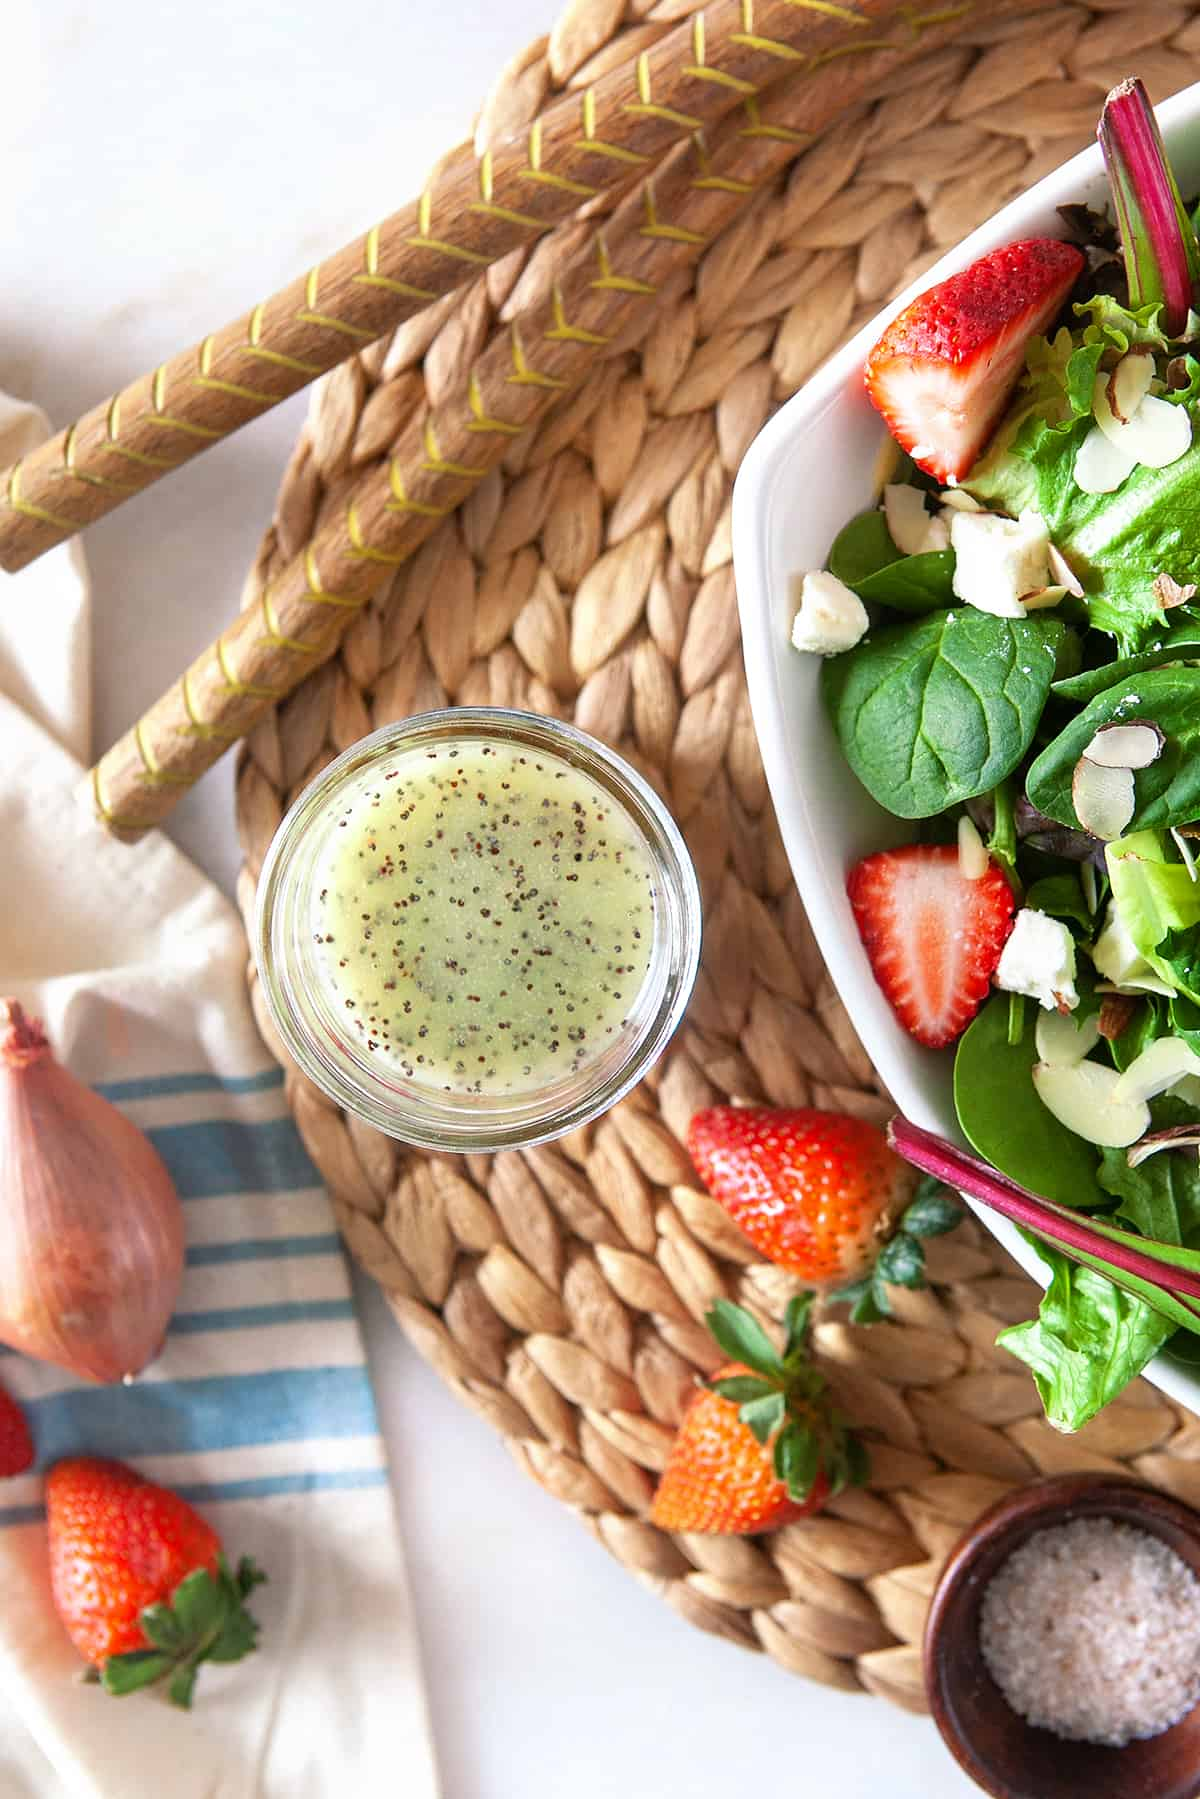 Overhead of homemade poppy seed dressing in a jar on a woven mat with a strawberry salad.